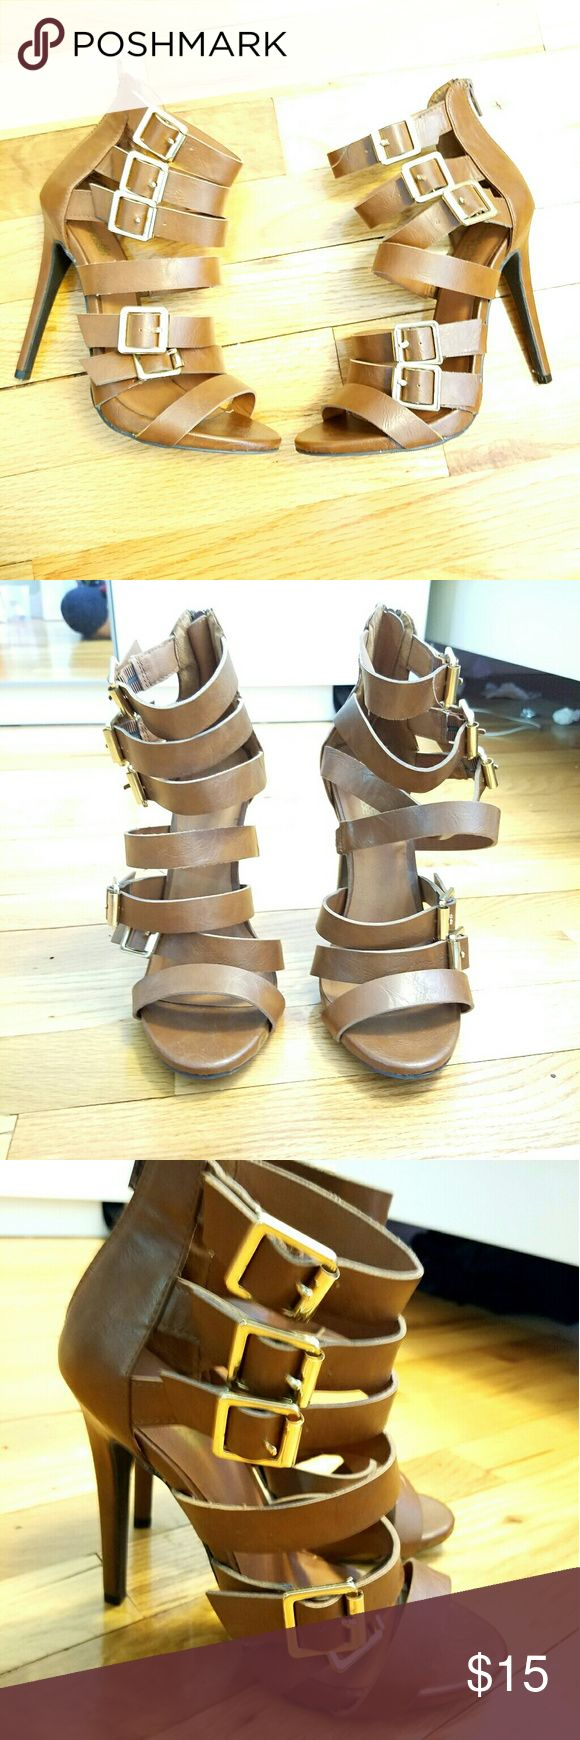 """*NWOT Charlotte Russe Brown Strappy Heels Brand new never worn! Brown Strappy Heels from Charlotte Russe with gold buckle details, zipper closure. I don't have the original box.  Size: 7 5"""" heels  Color: Brown with gold buckles Charlotte Russe Shoes Heels"""